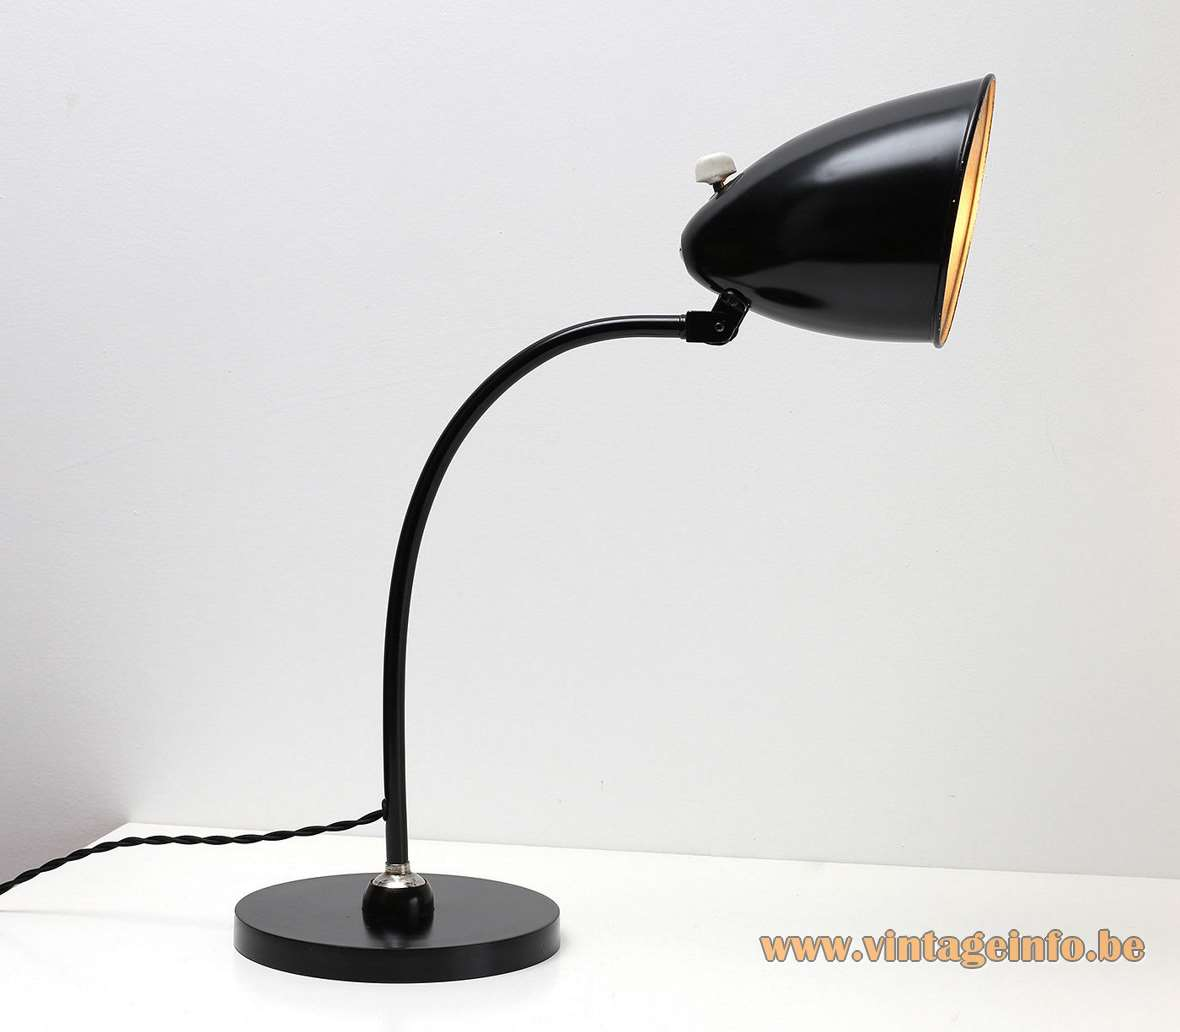 Hala Hannover desk lamp 1464 black round base curved rod bell shape lampshade 1930s 1940s Bauhaus